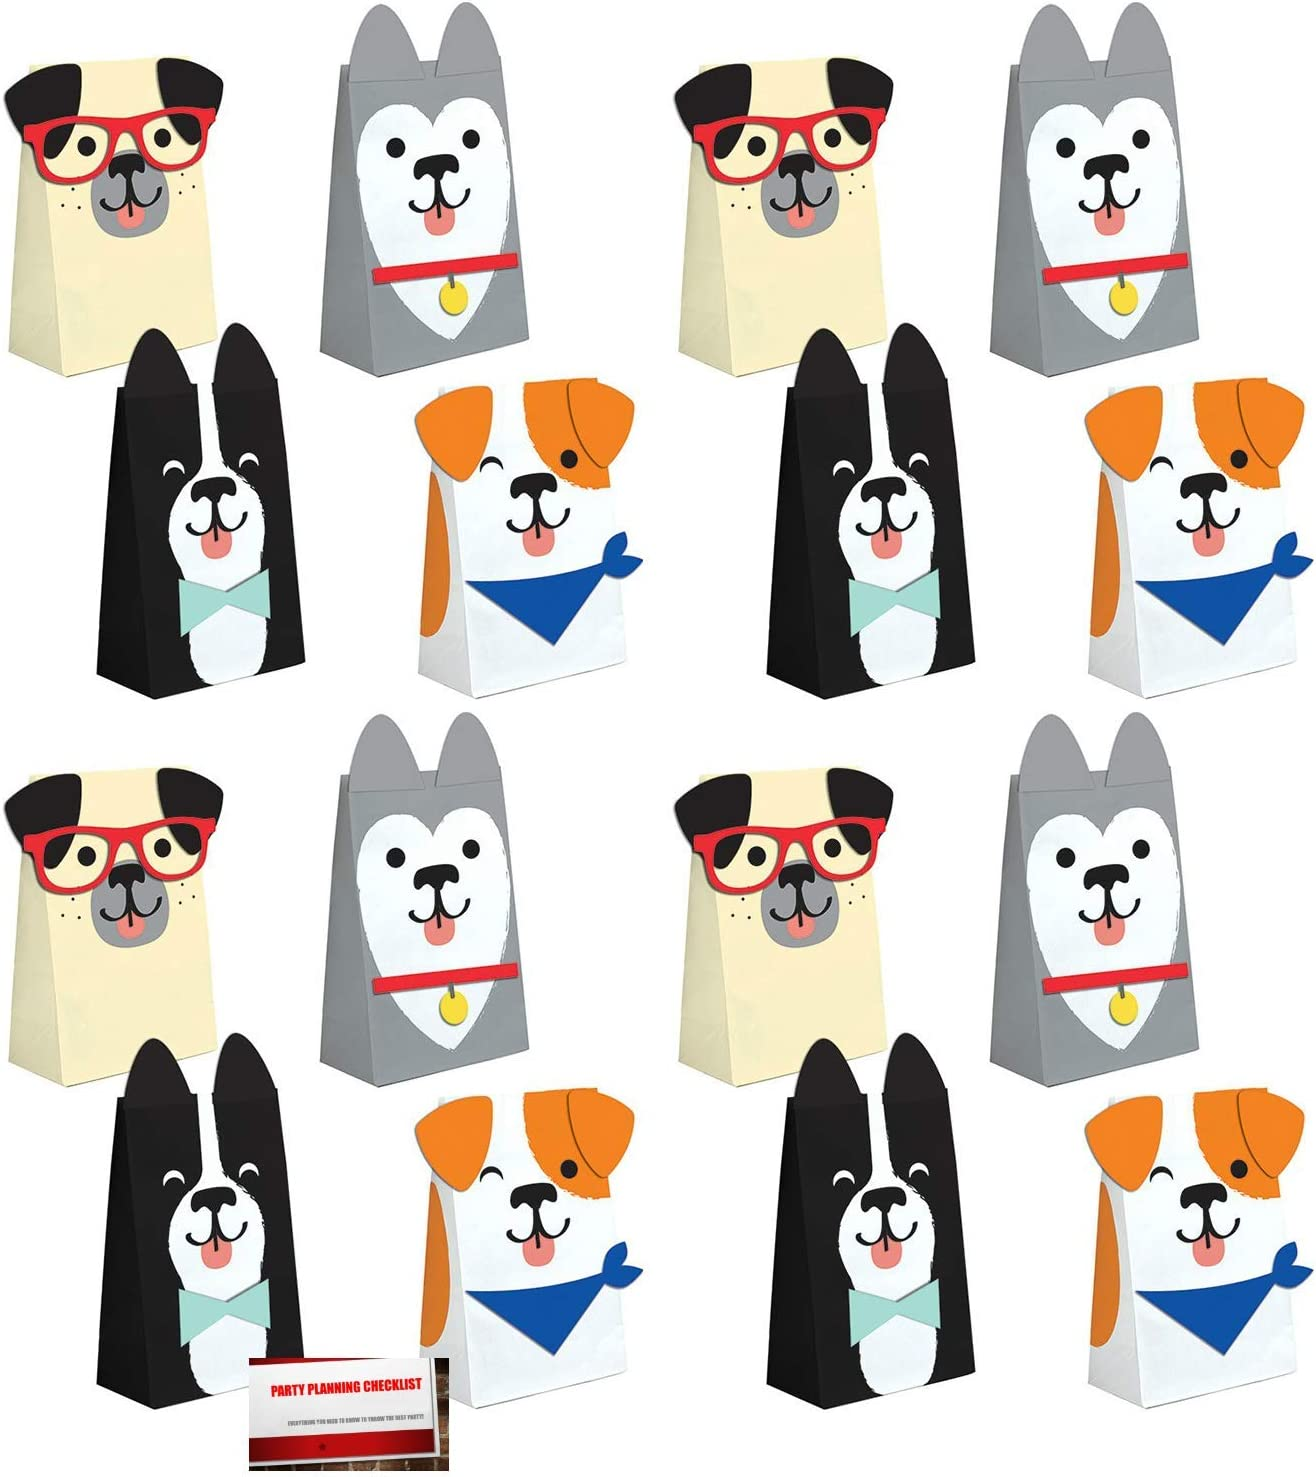 Creative Converting /& MSS Puppy Dog 16 Pack Party Paper Loot Treat Candy Favor Bags with Attachments Plus Party Planning Checklist by Mikes Super Store